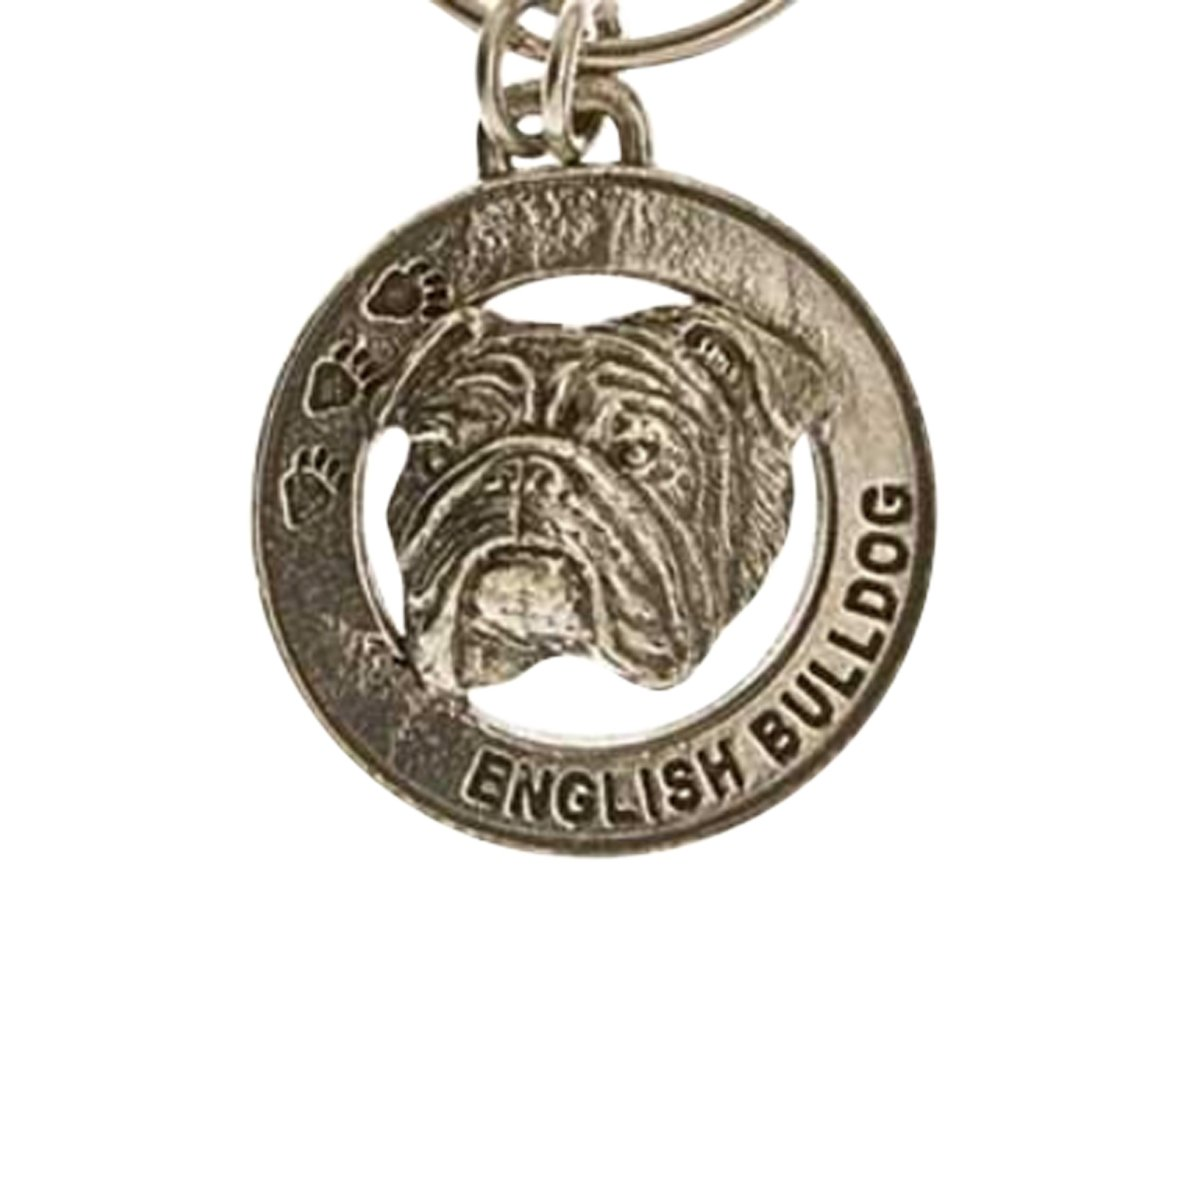 Creative Pewter Designs, Pewter English Bulldog Key Chain, Antiqued Finish, DK072